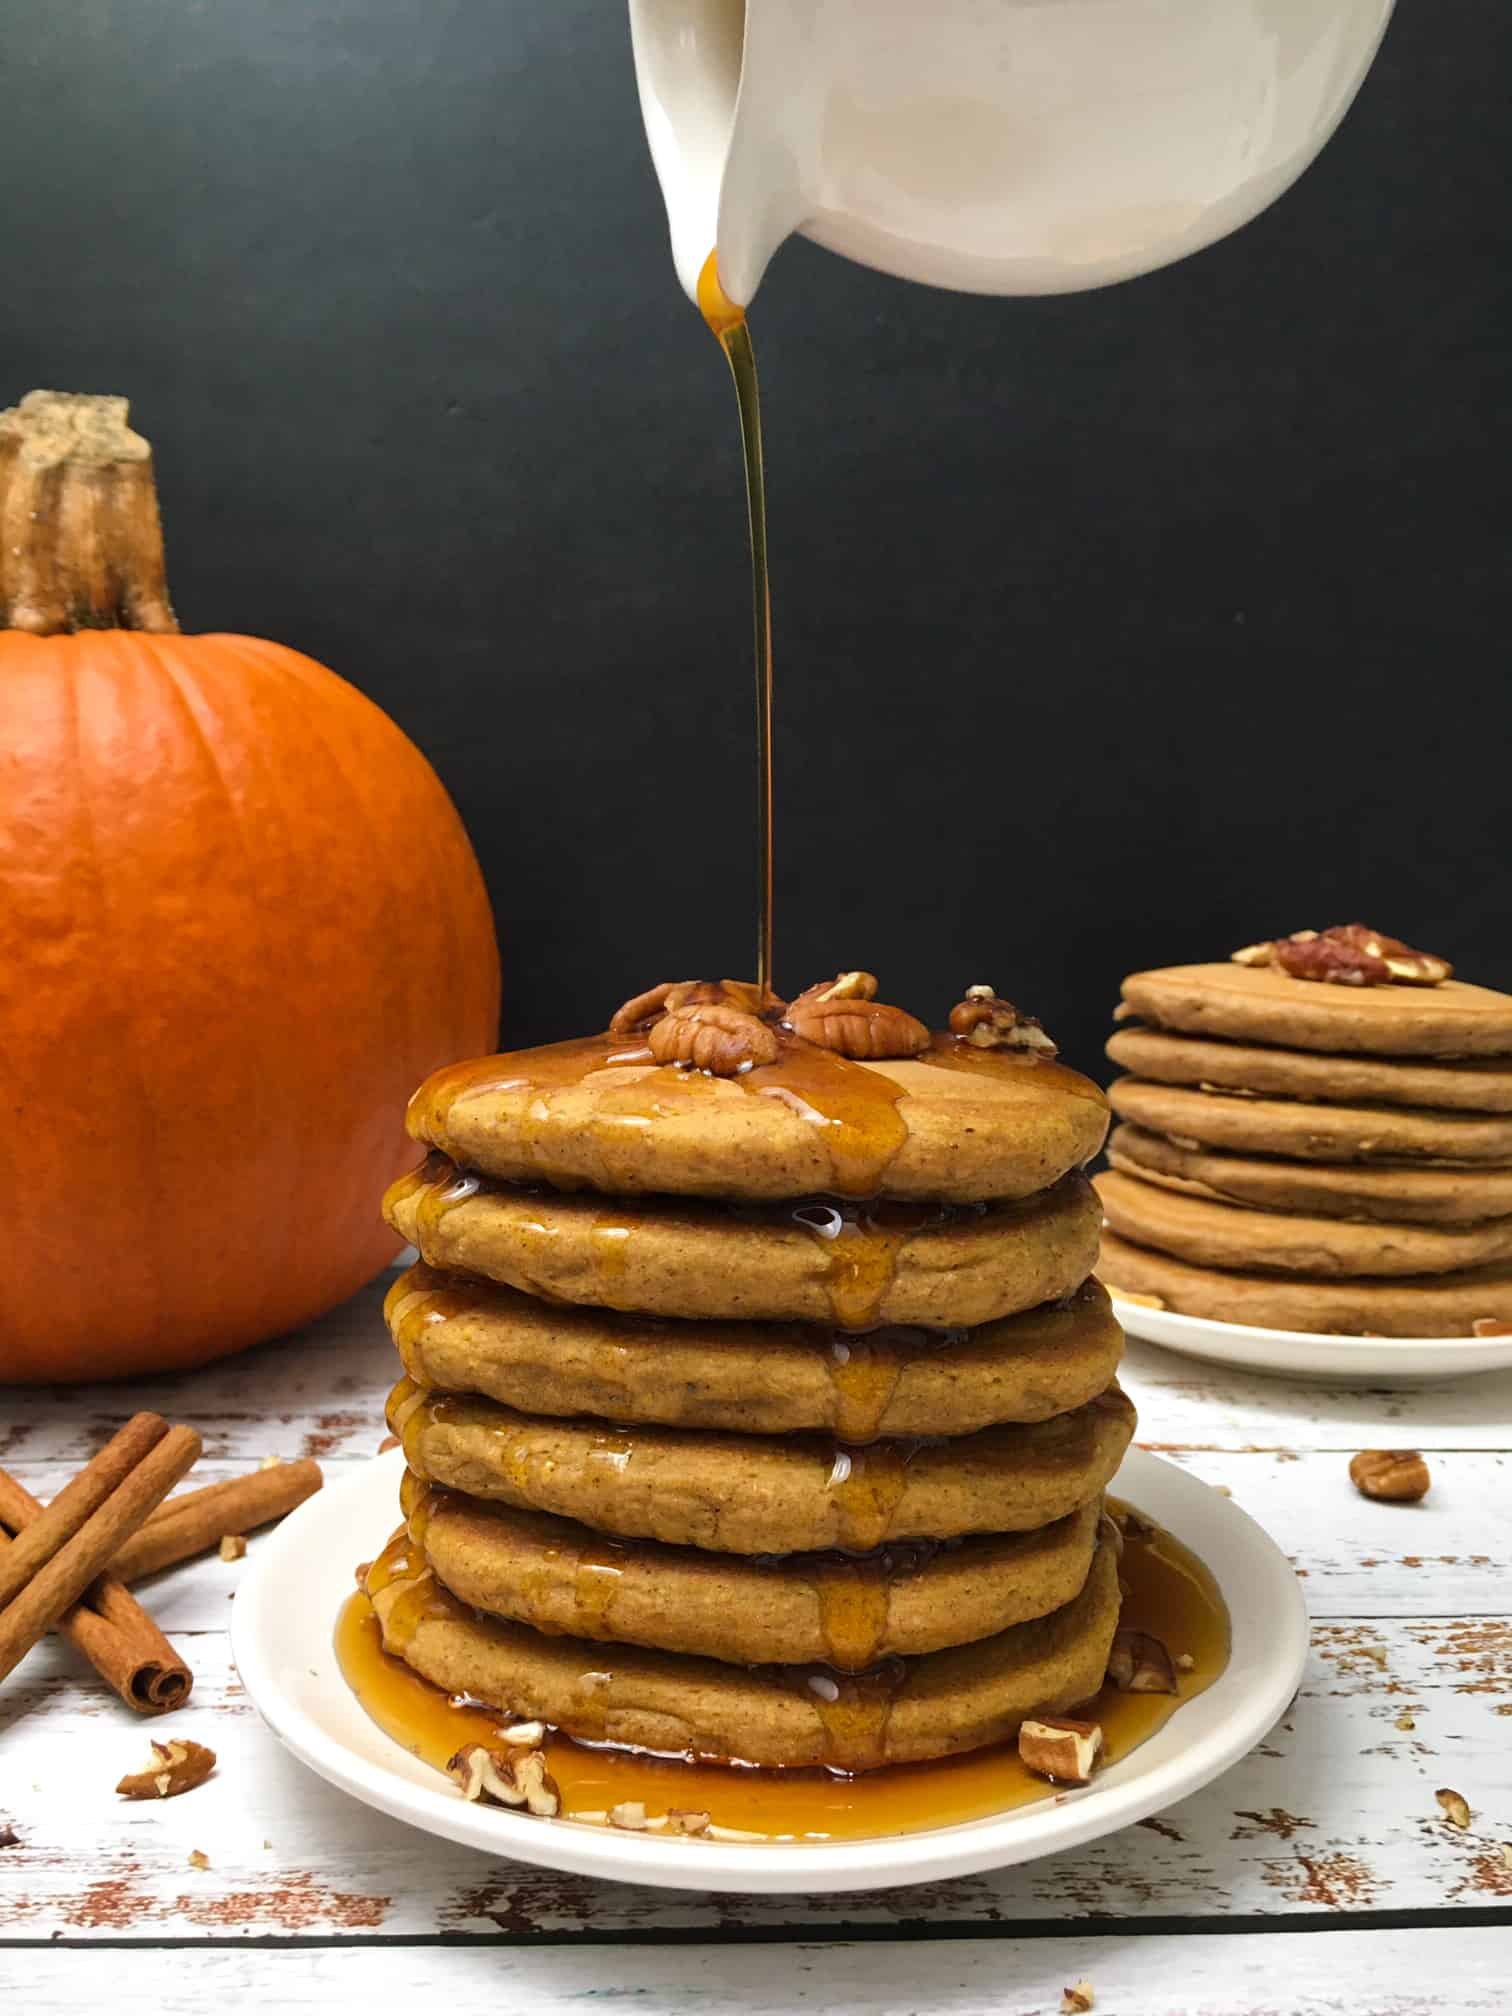 syrup drizzling over stack of pumpkin spice pancakes.